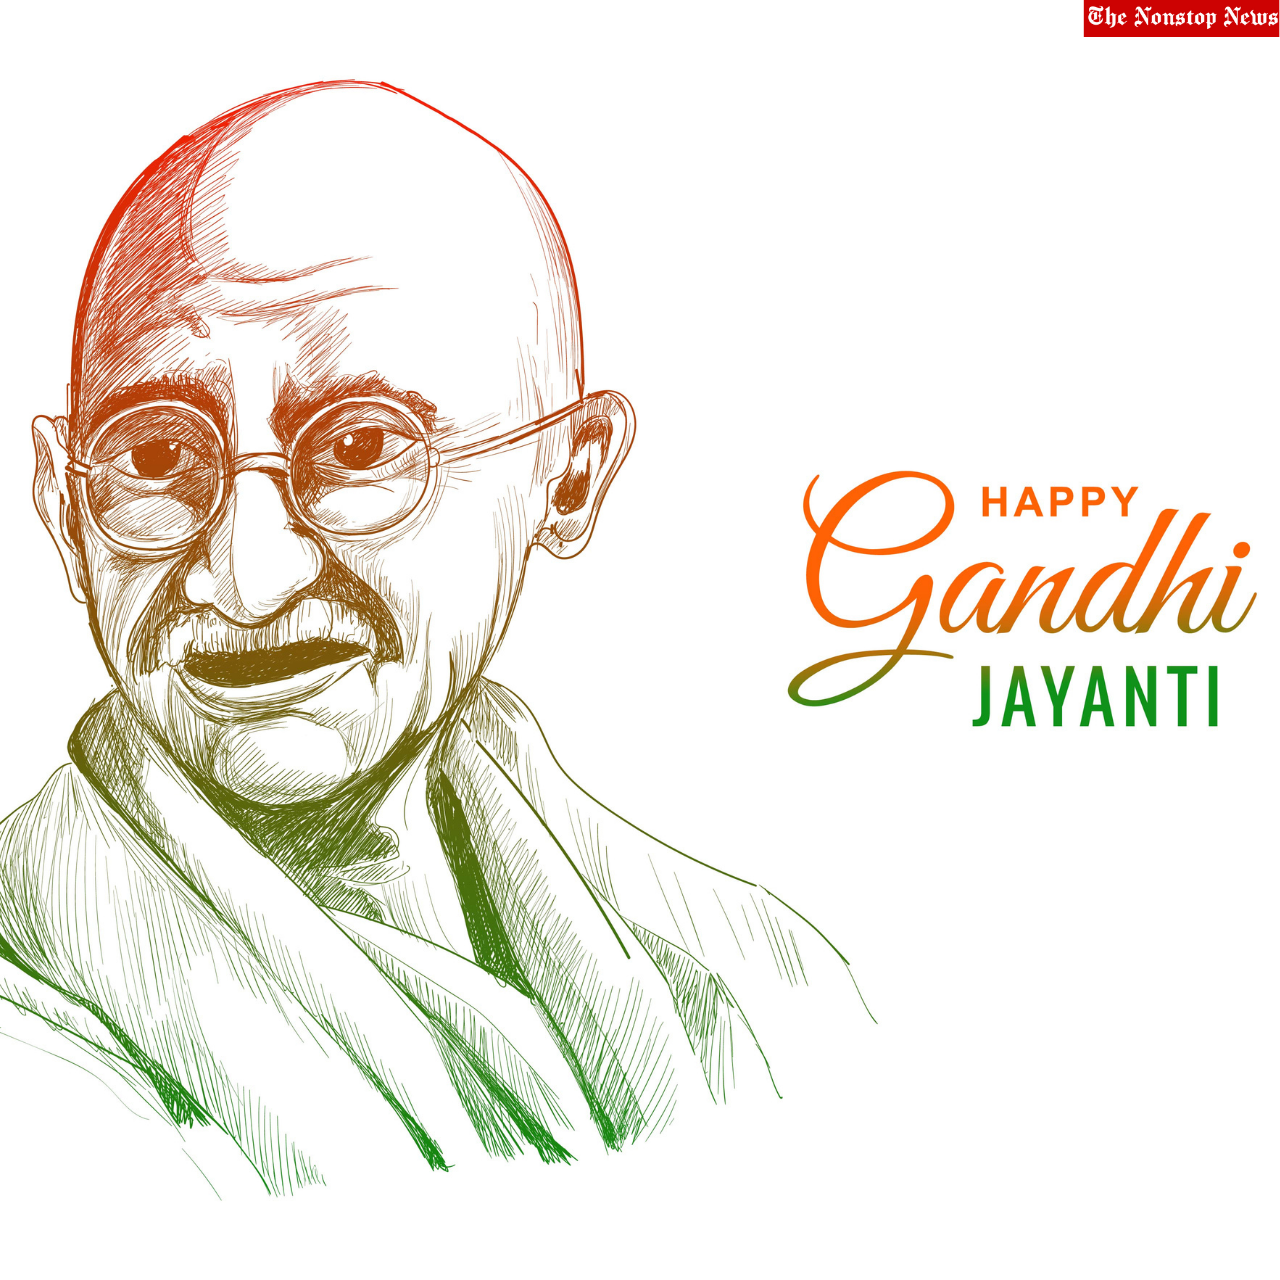 Gandhi Jayanti 2021 Wishes, Quotes, HD Images, Messages, DP, Greetings, and Slogans to share